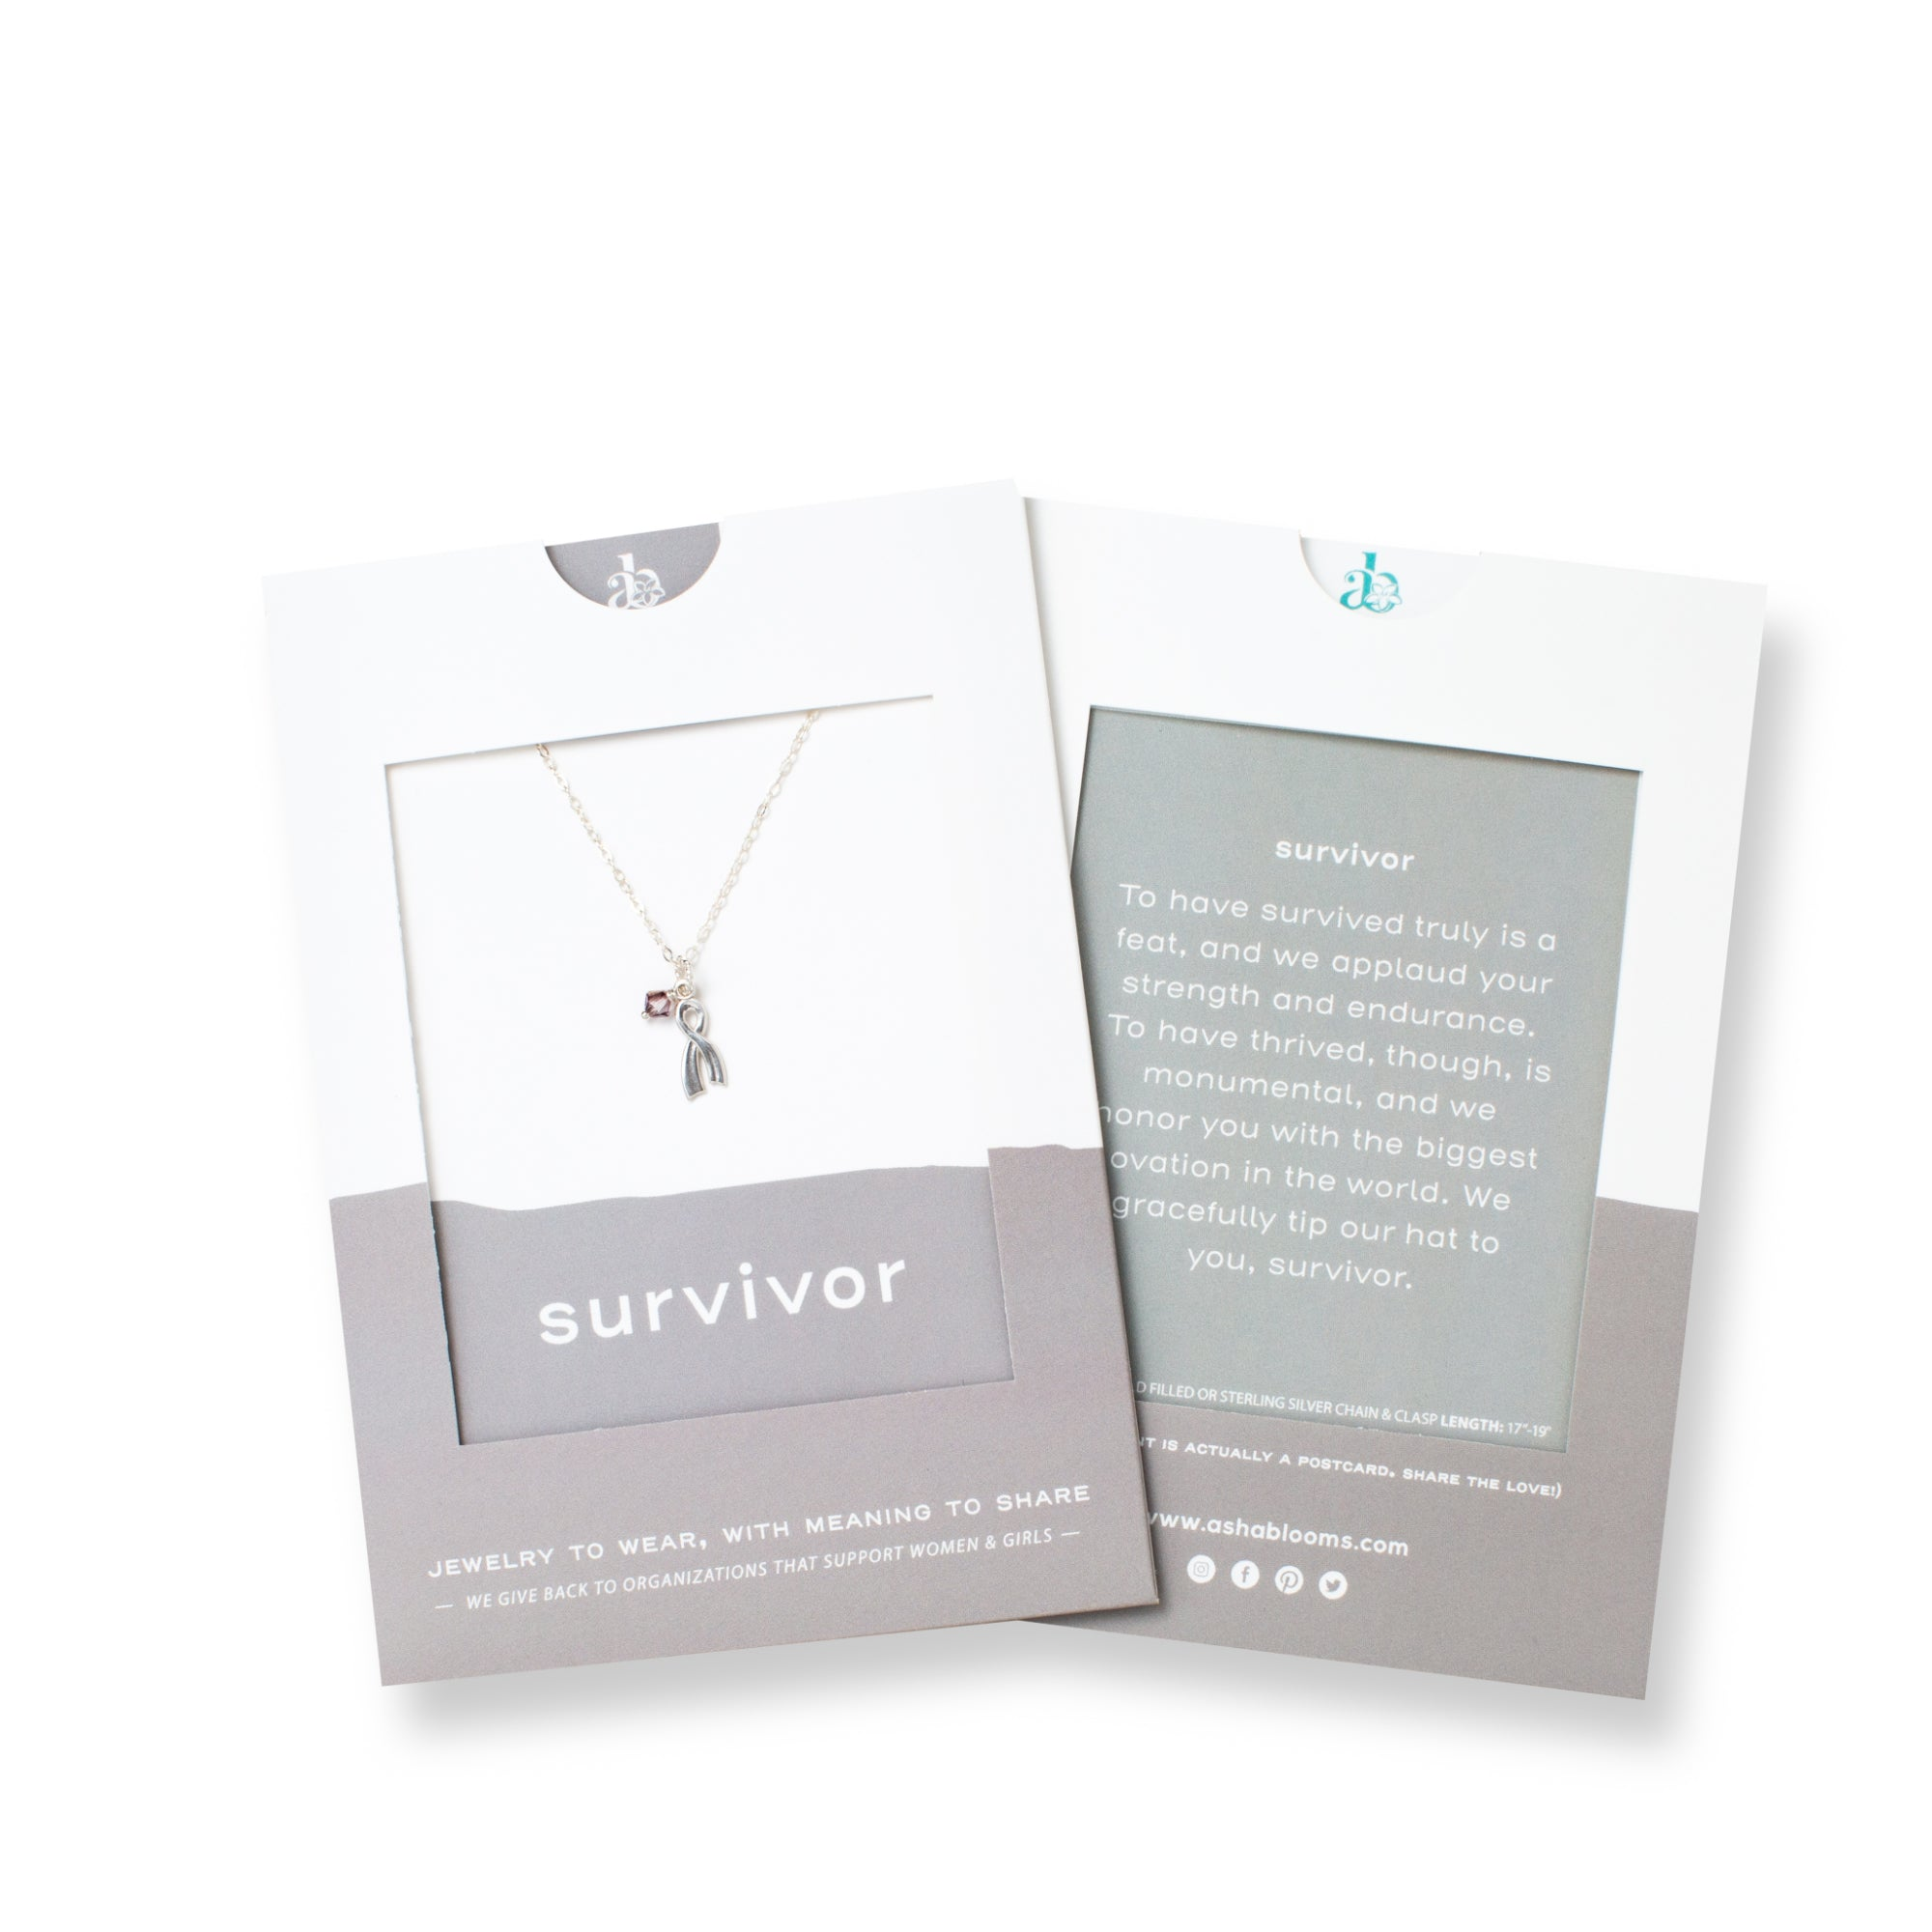 Silver Ribbon Pendant with Pink Crystal Necklace 'Survivor' in Gray Gift Message Sleeve Packaging Photo by Asha Blooms